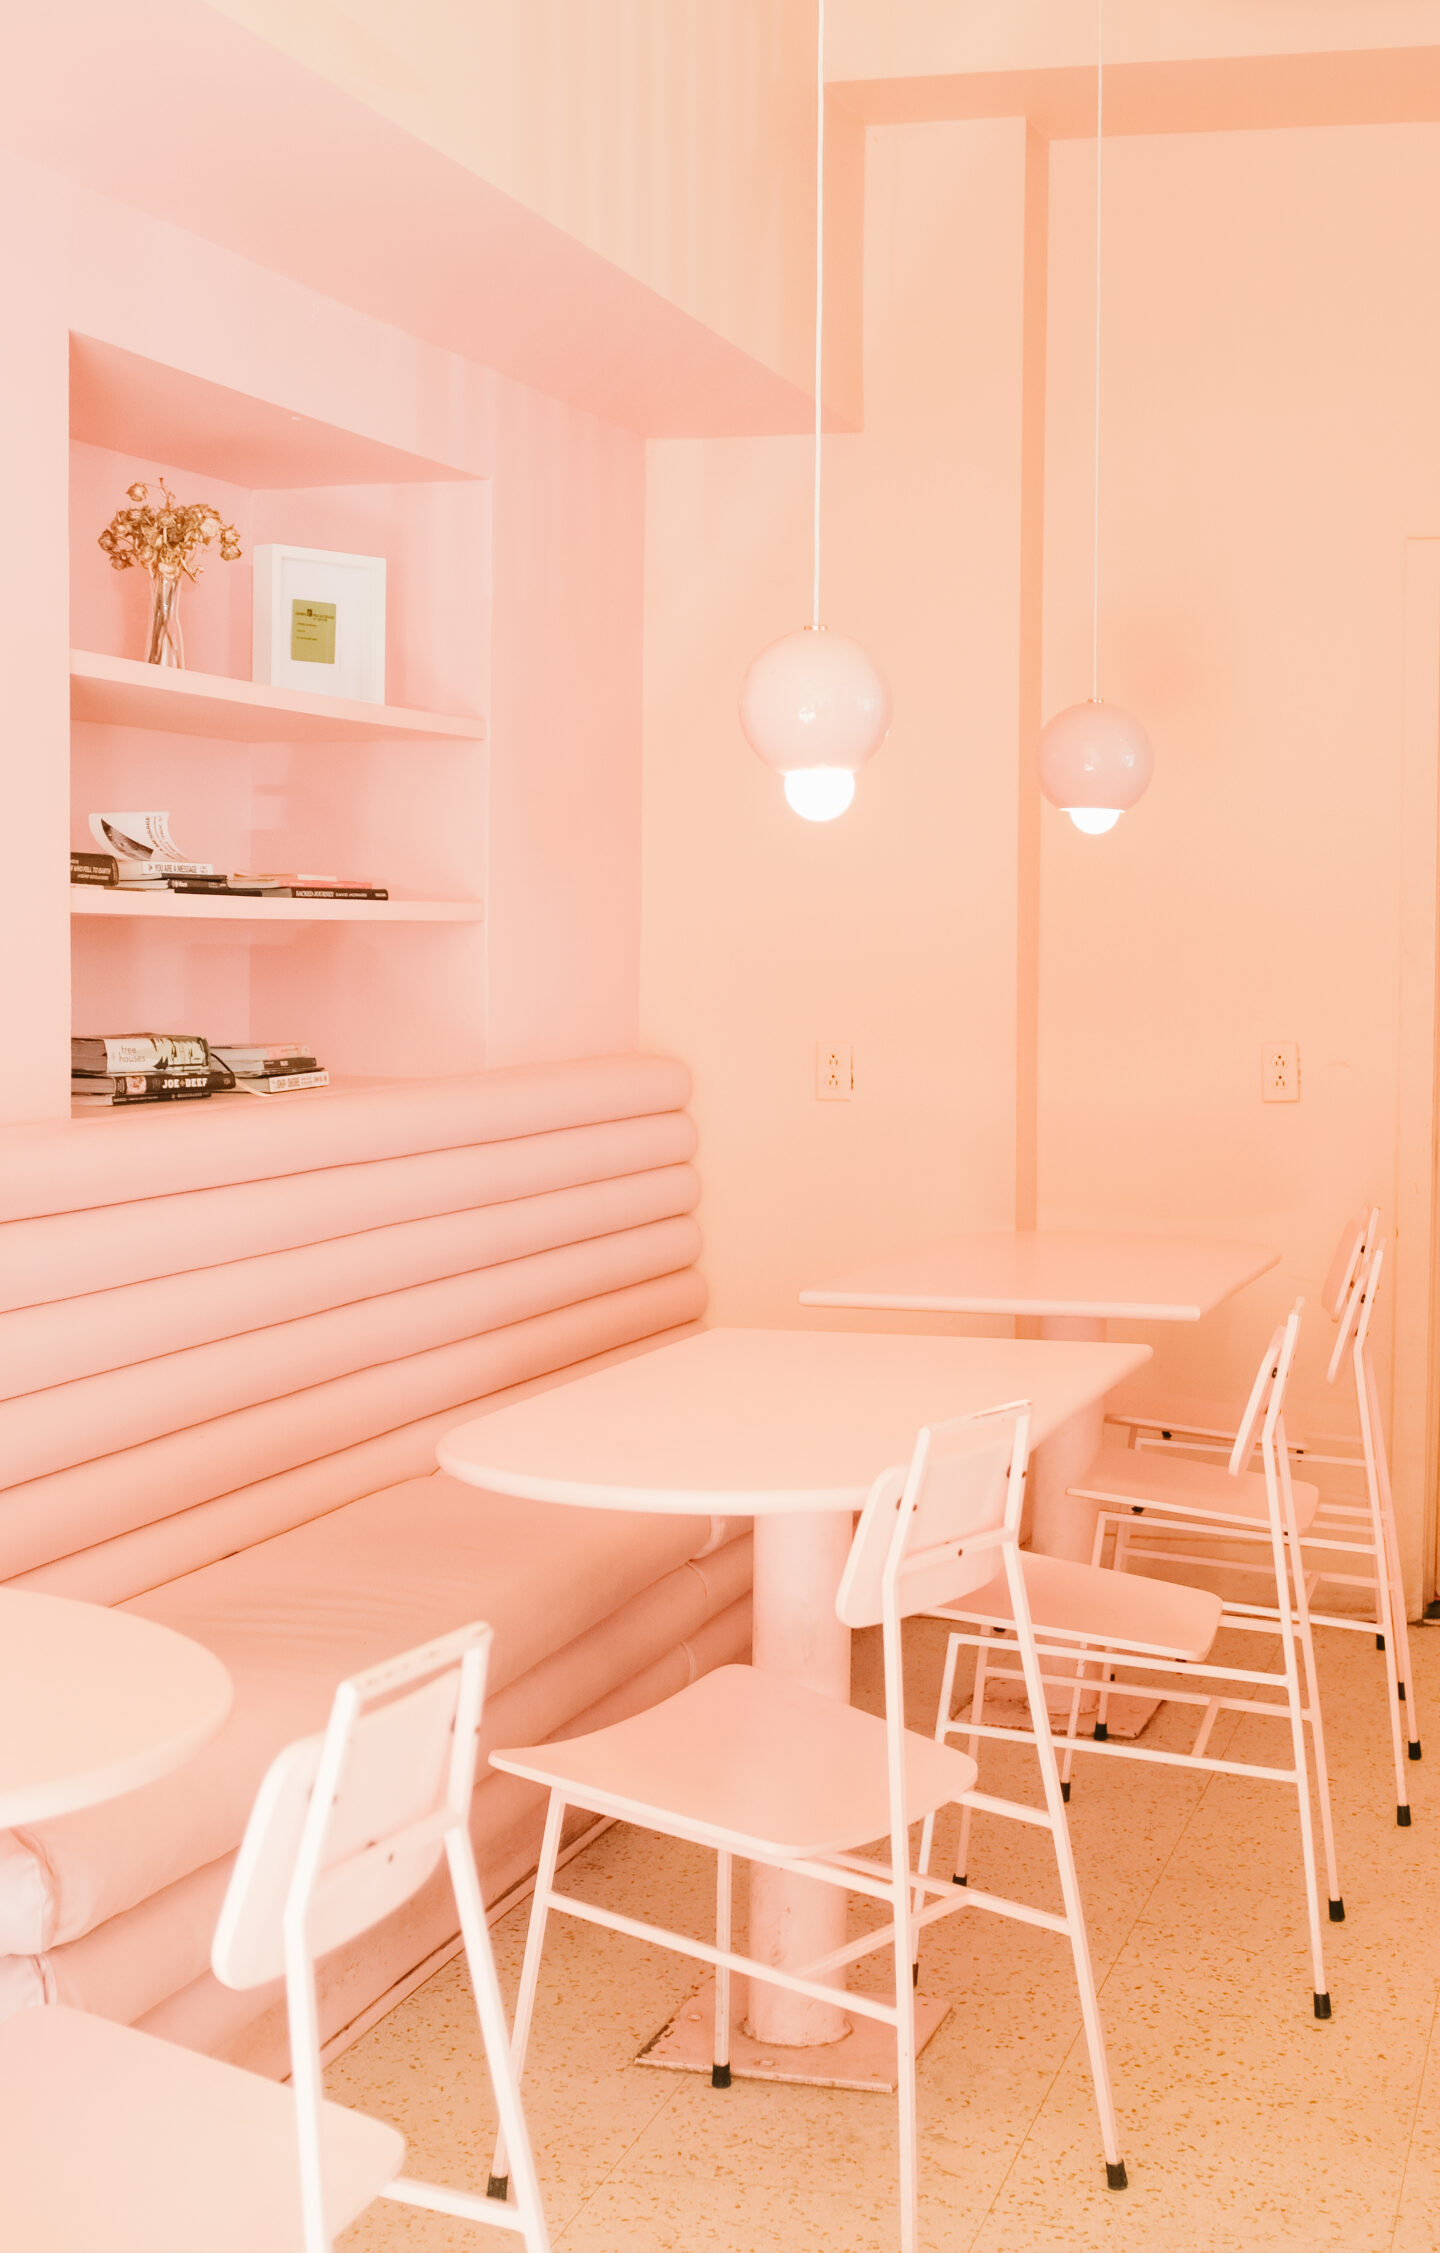 Where to have a first date in Montreal